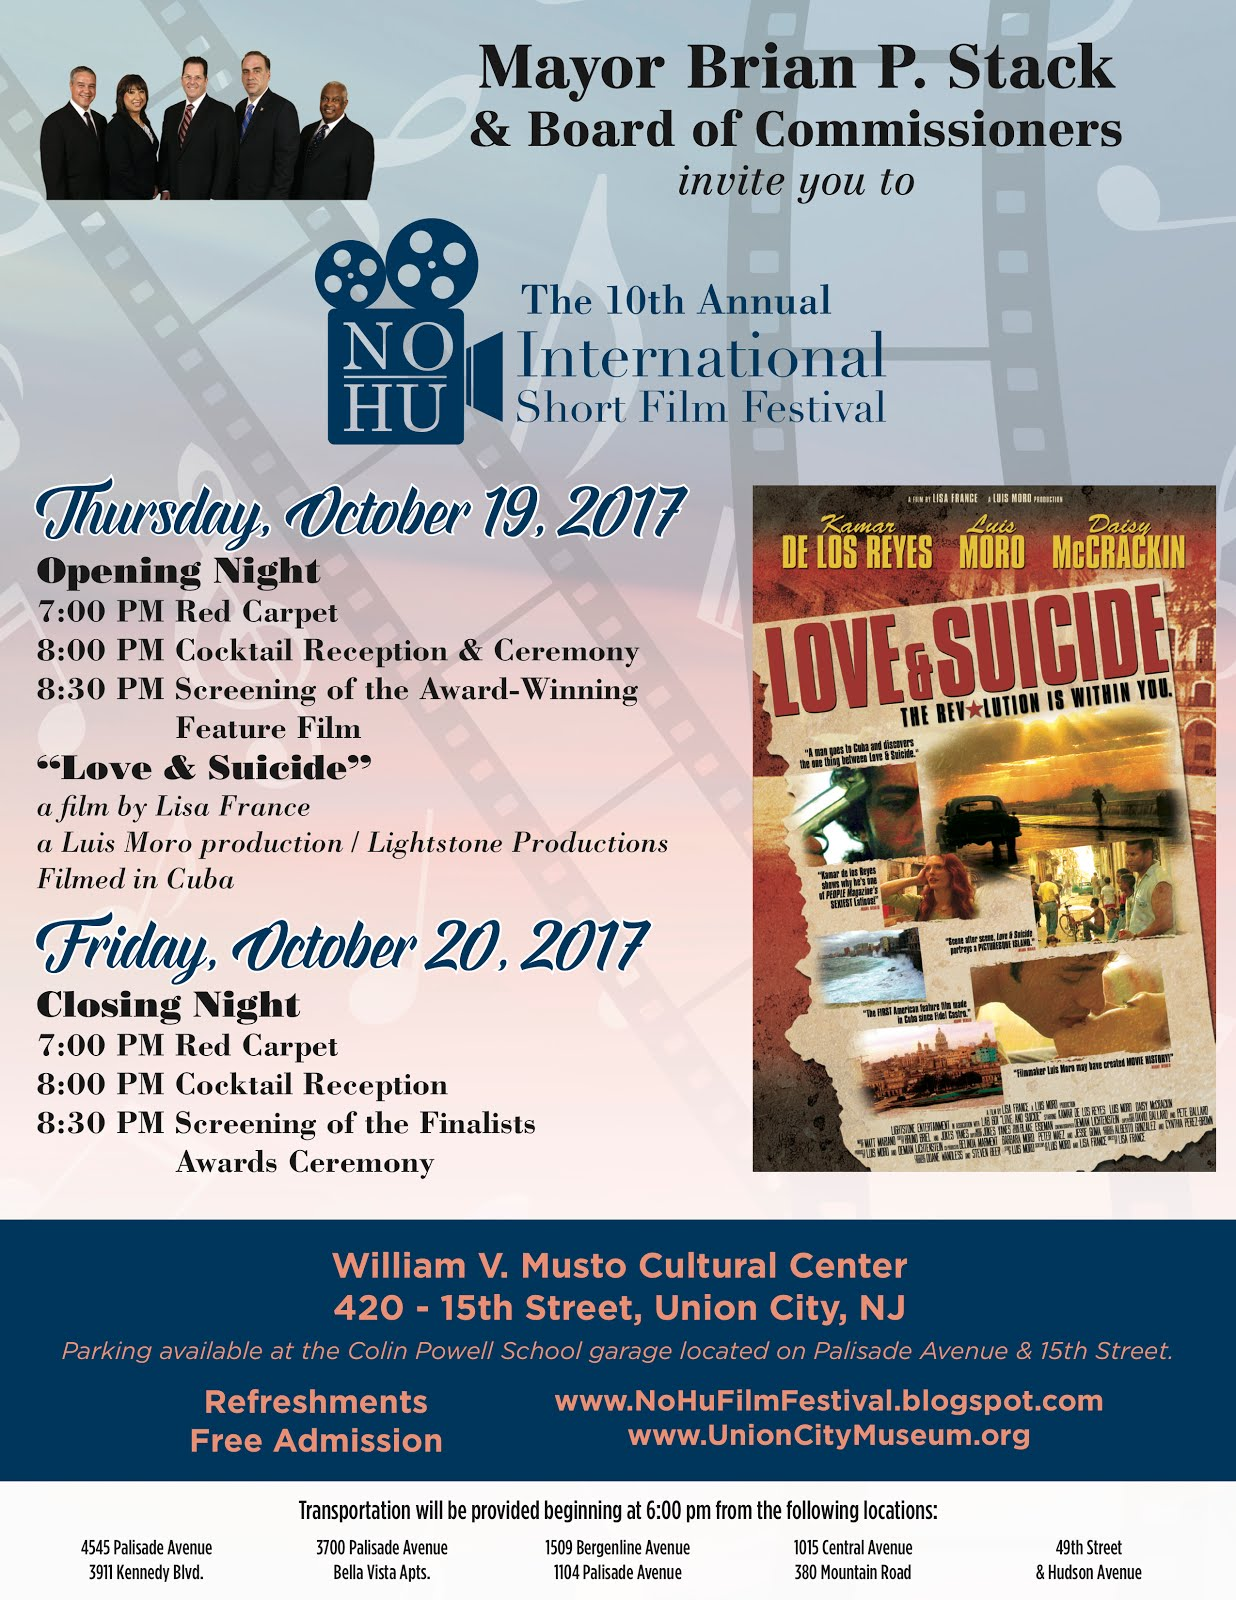 10th Annual NoHu International Short Film Festival